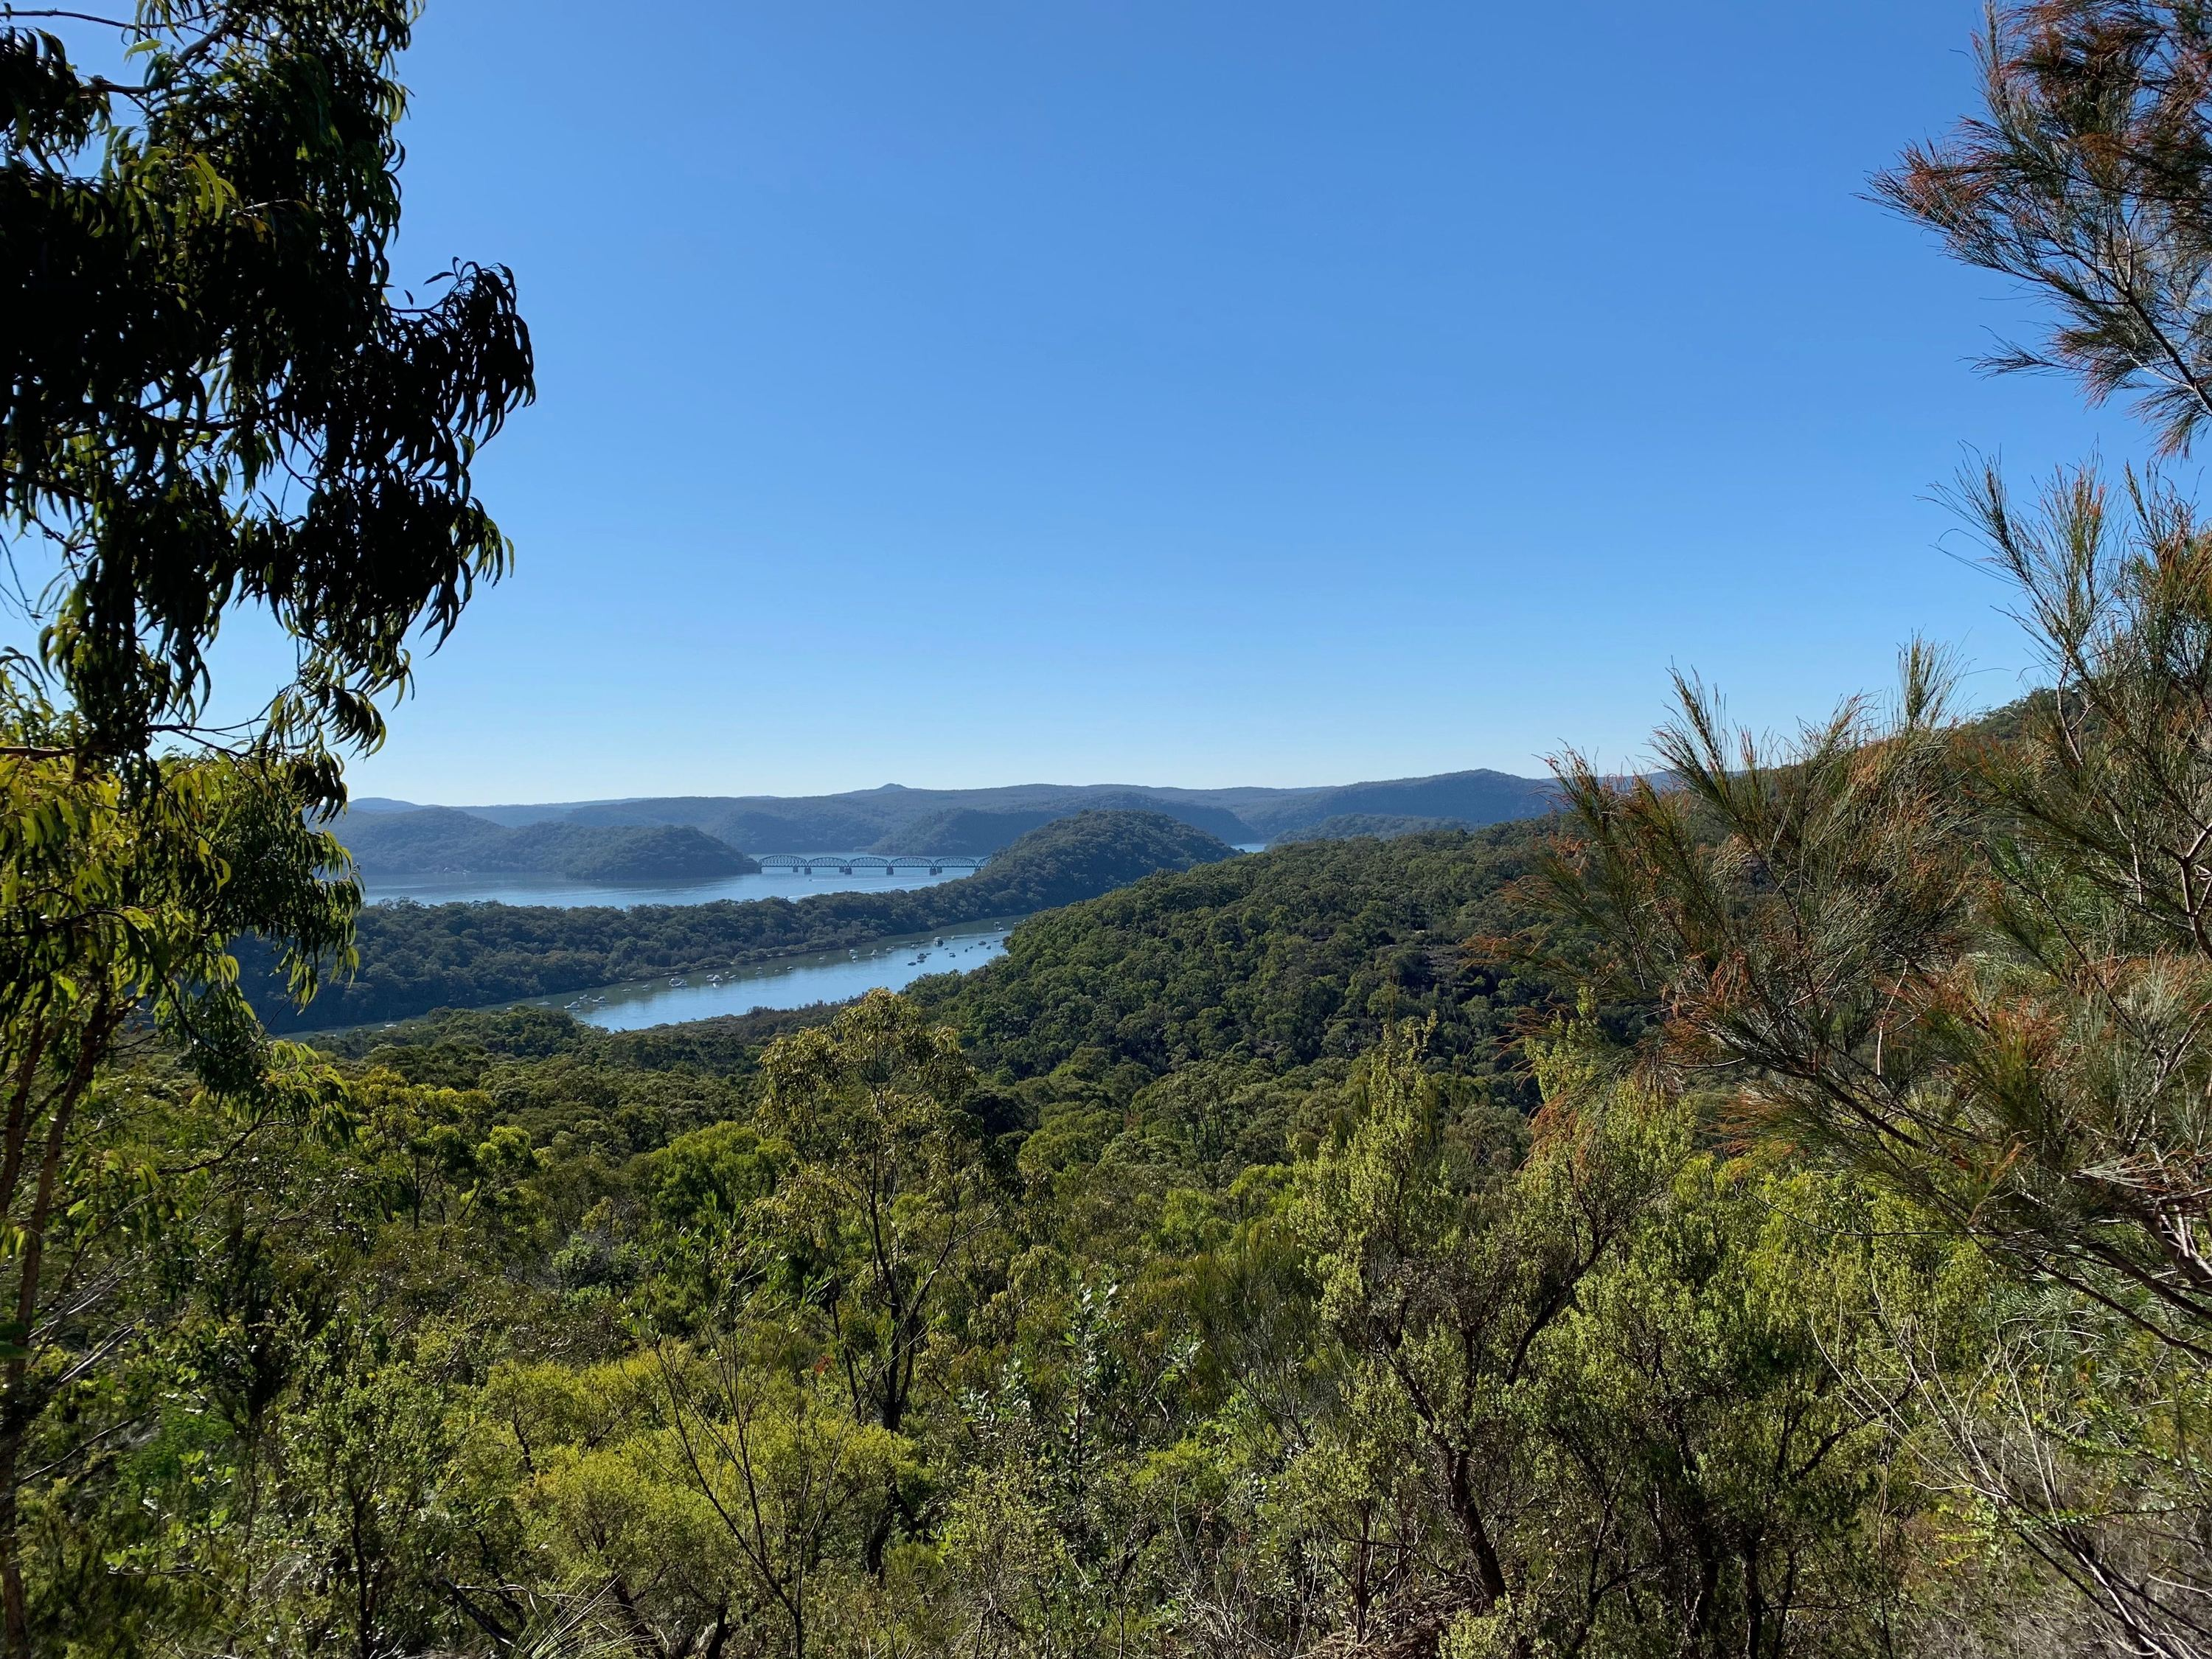 View of the Hawkesbury River from high up during the Brooklyn to Cowan Bushwalk